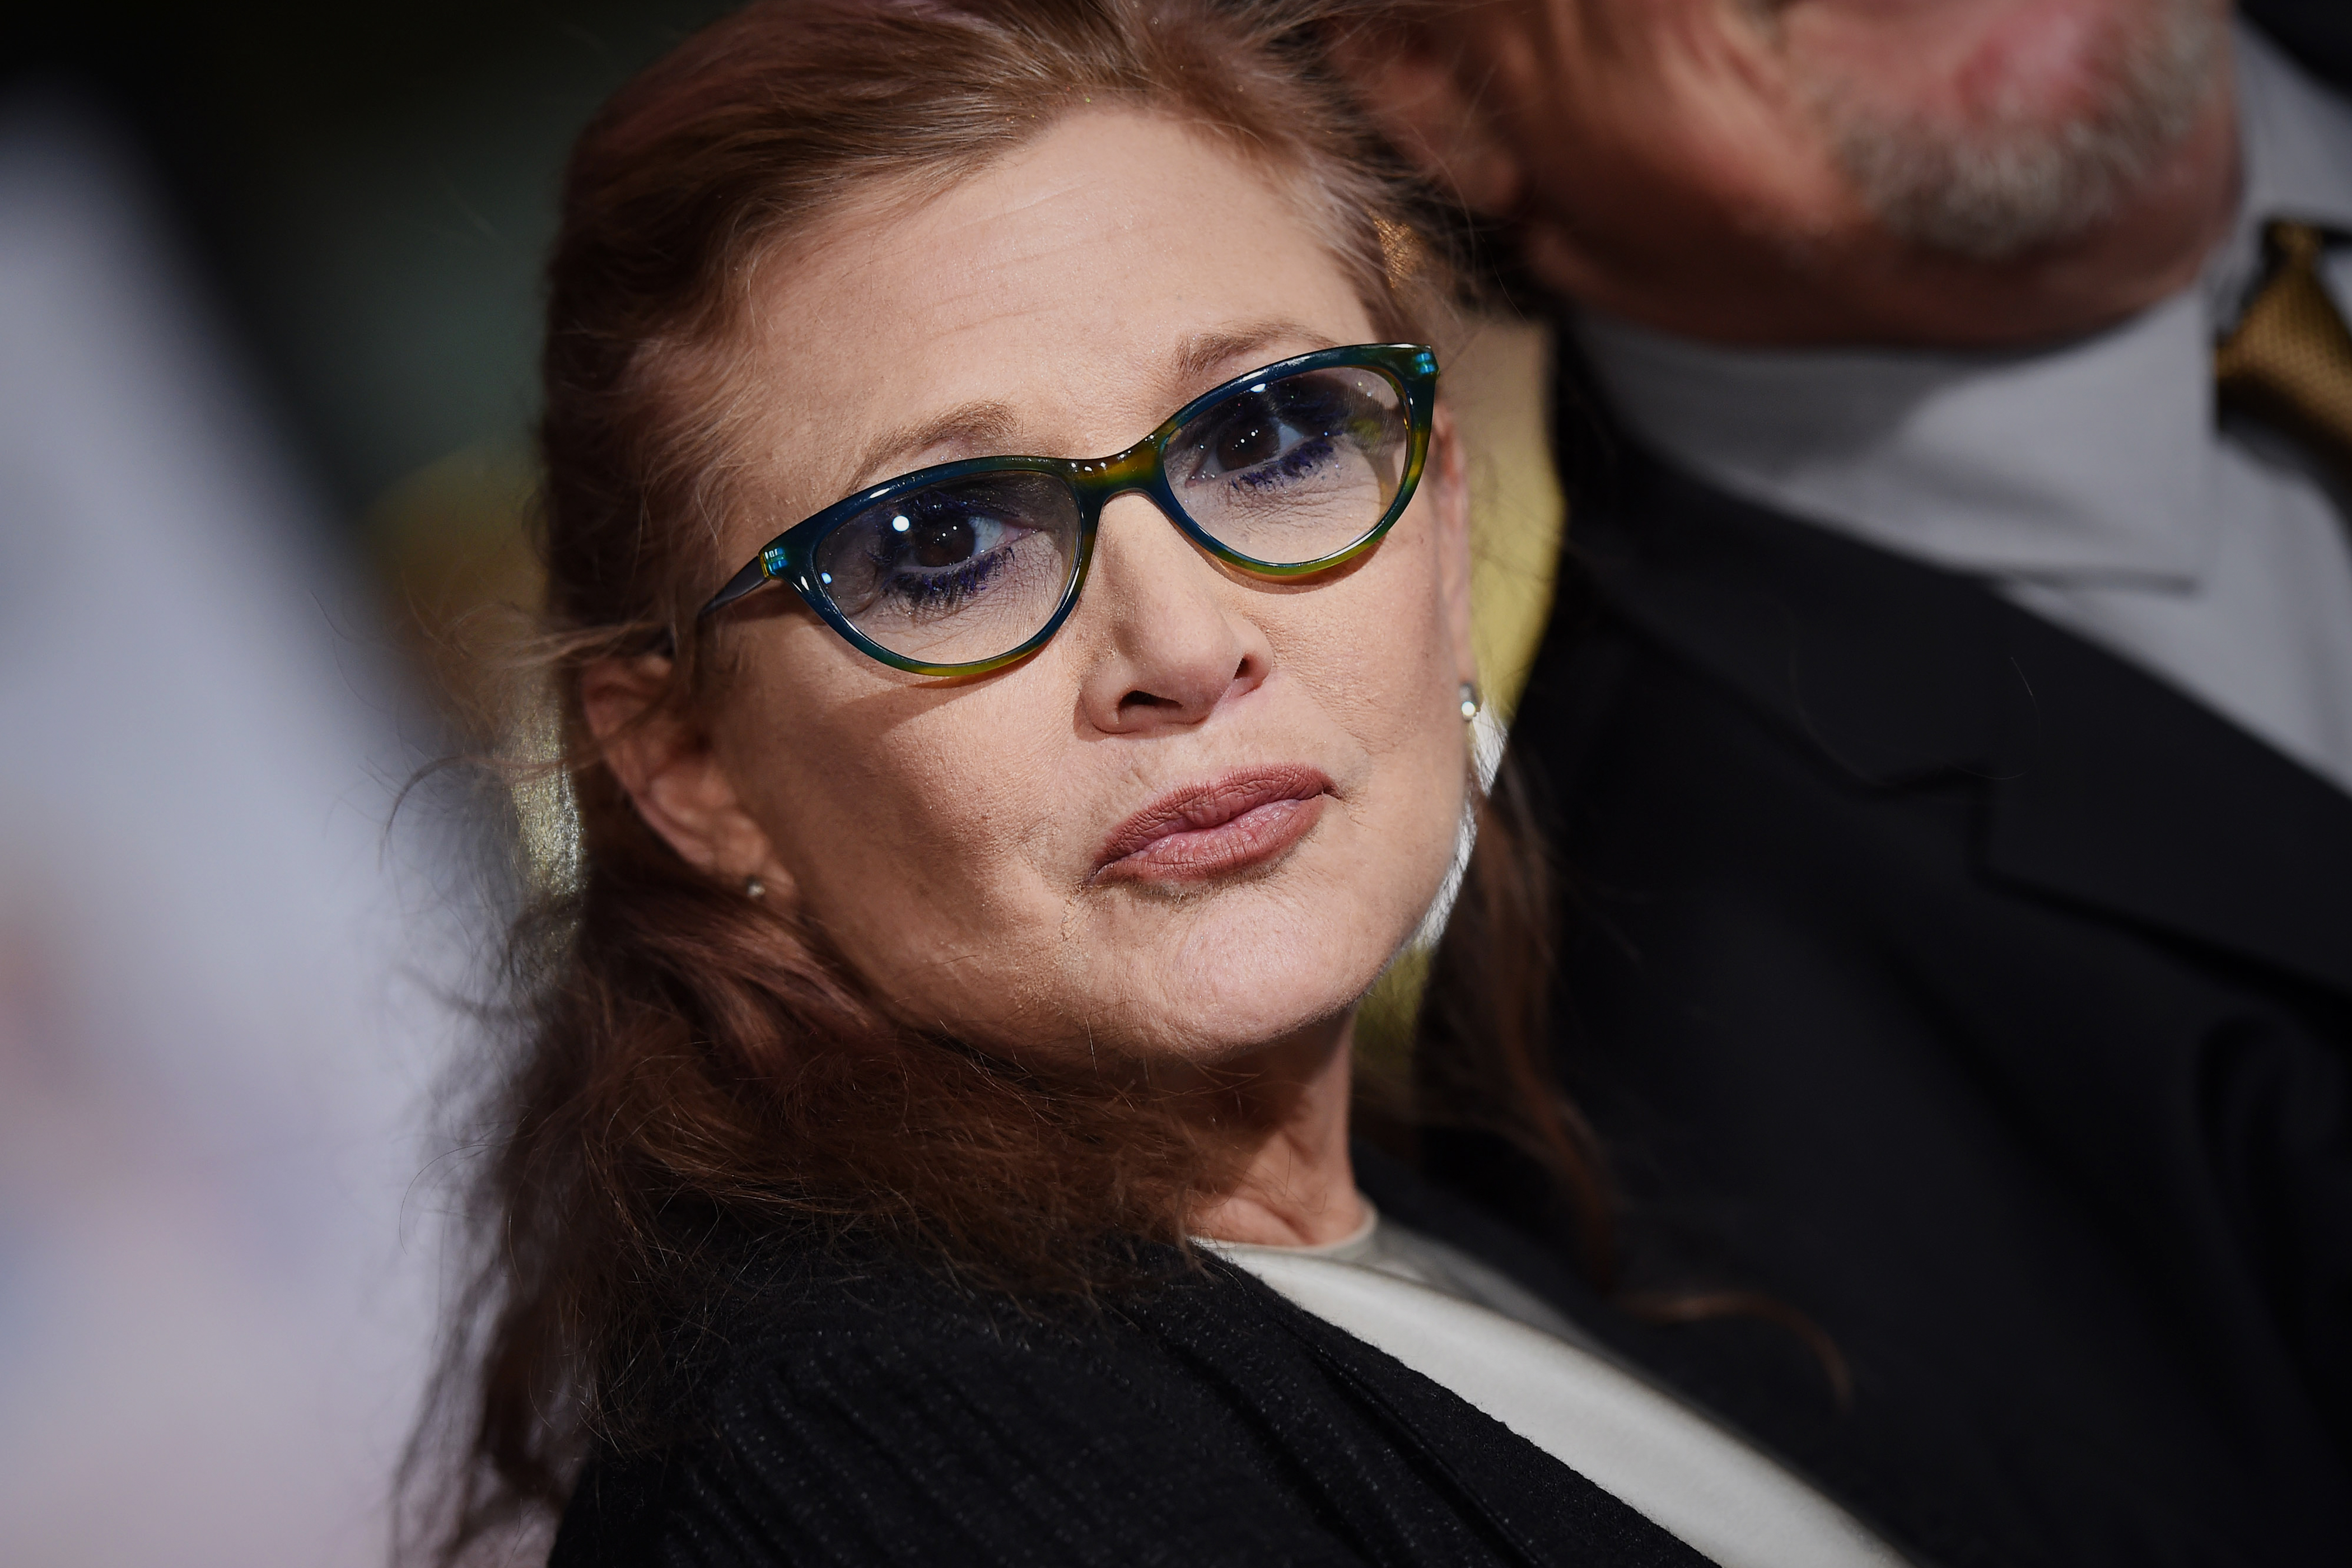 Are porn carrie fisher star wars delightful opinion you